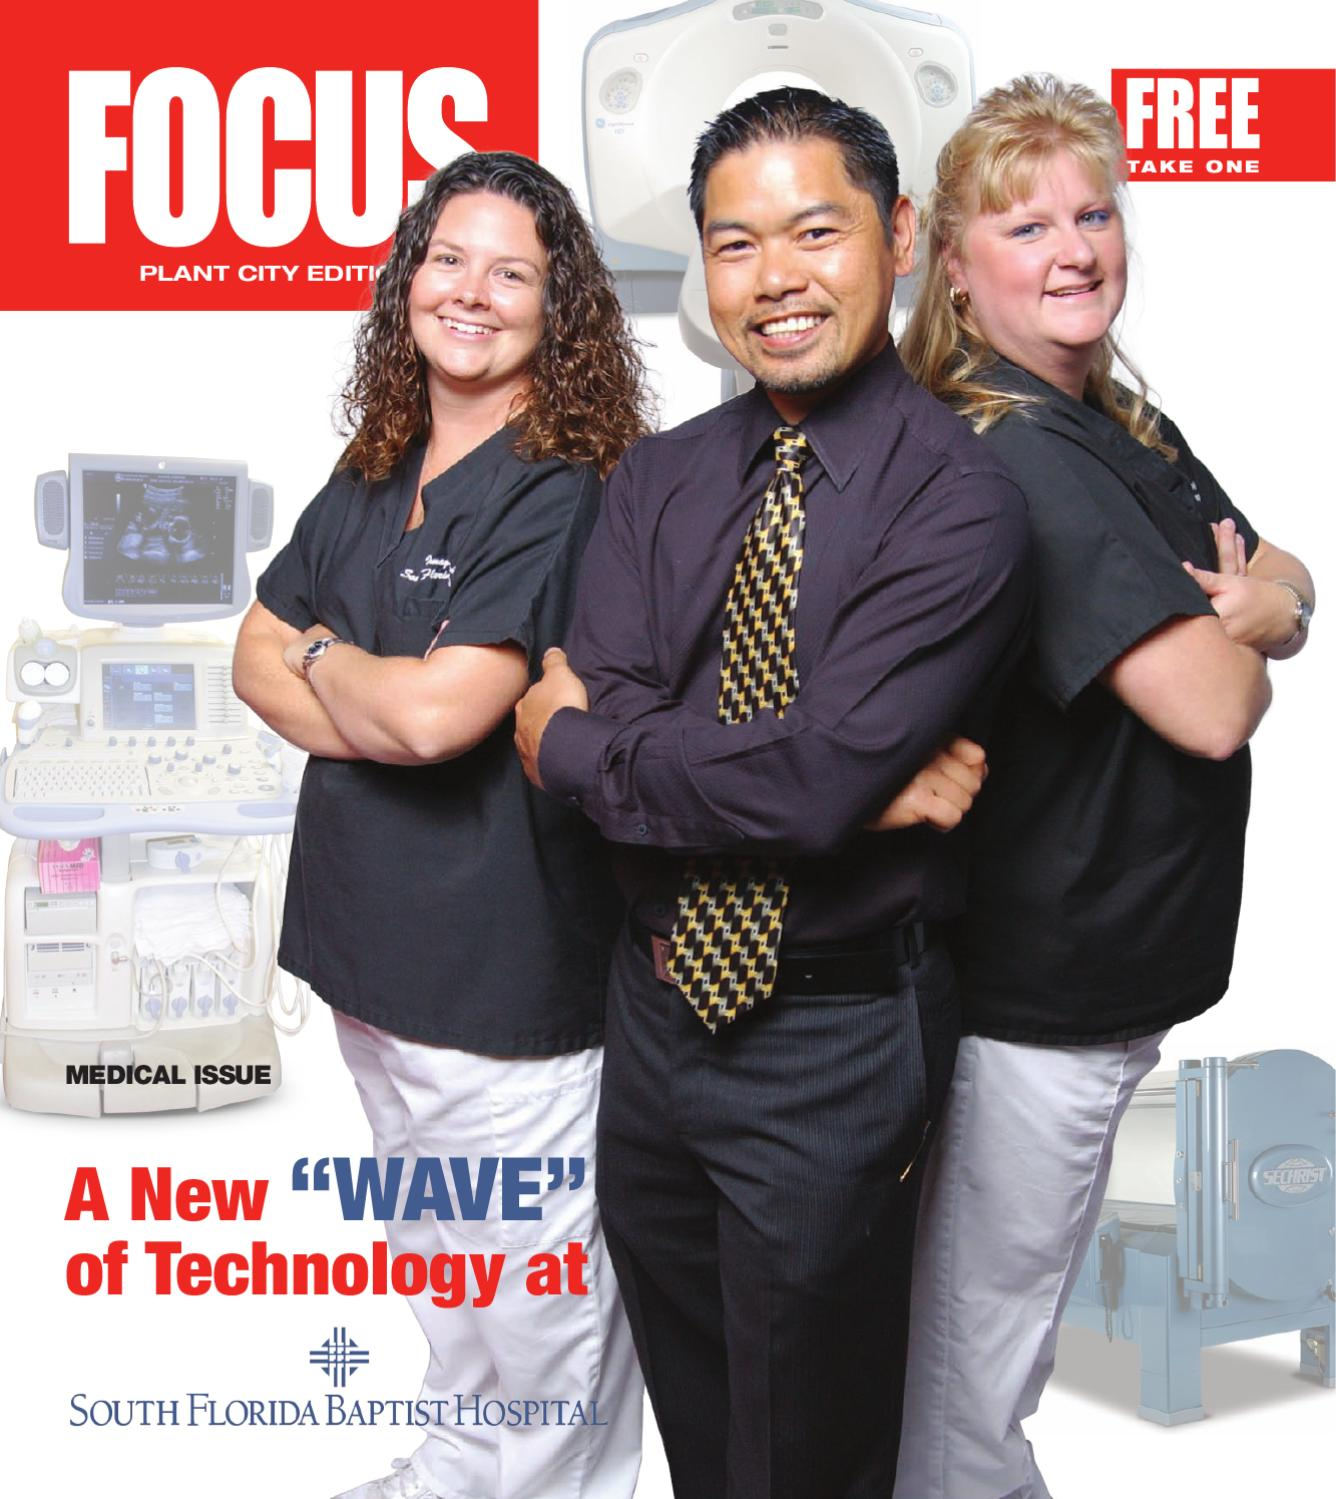 hinsdale magazine 2014 by hinsdale60521 com issuu focus plant city 07 05